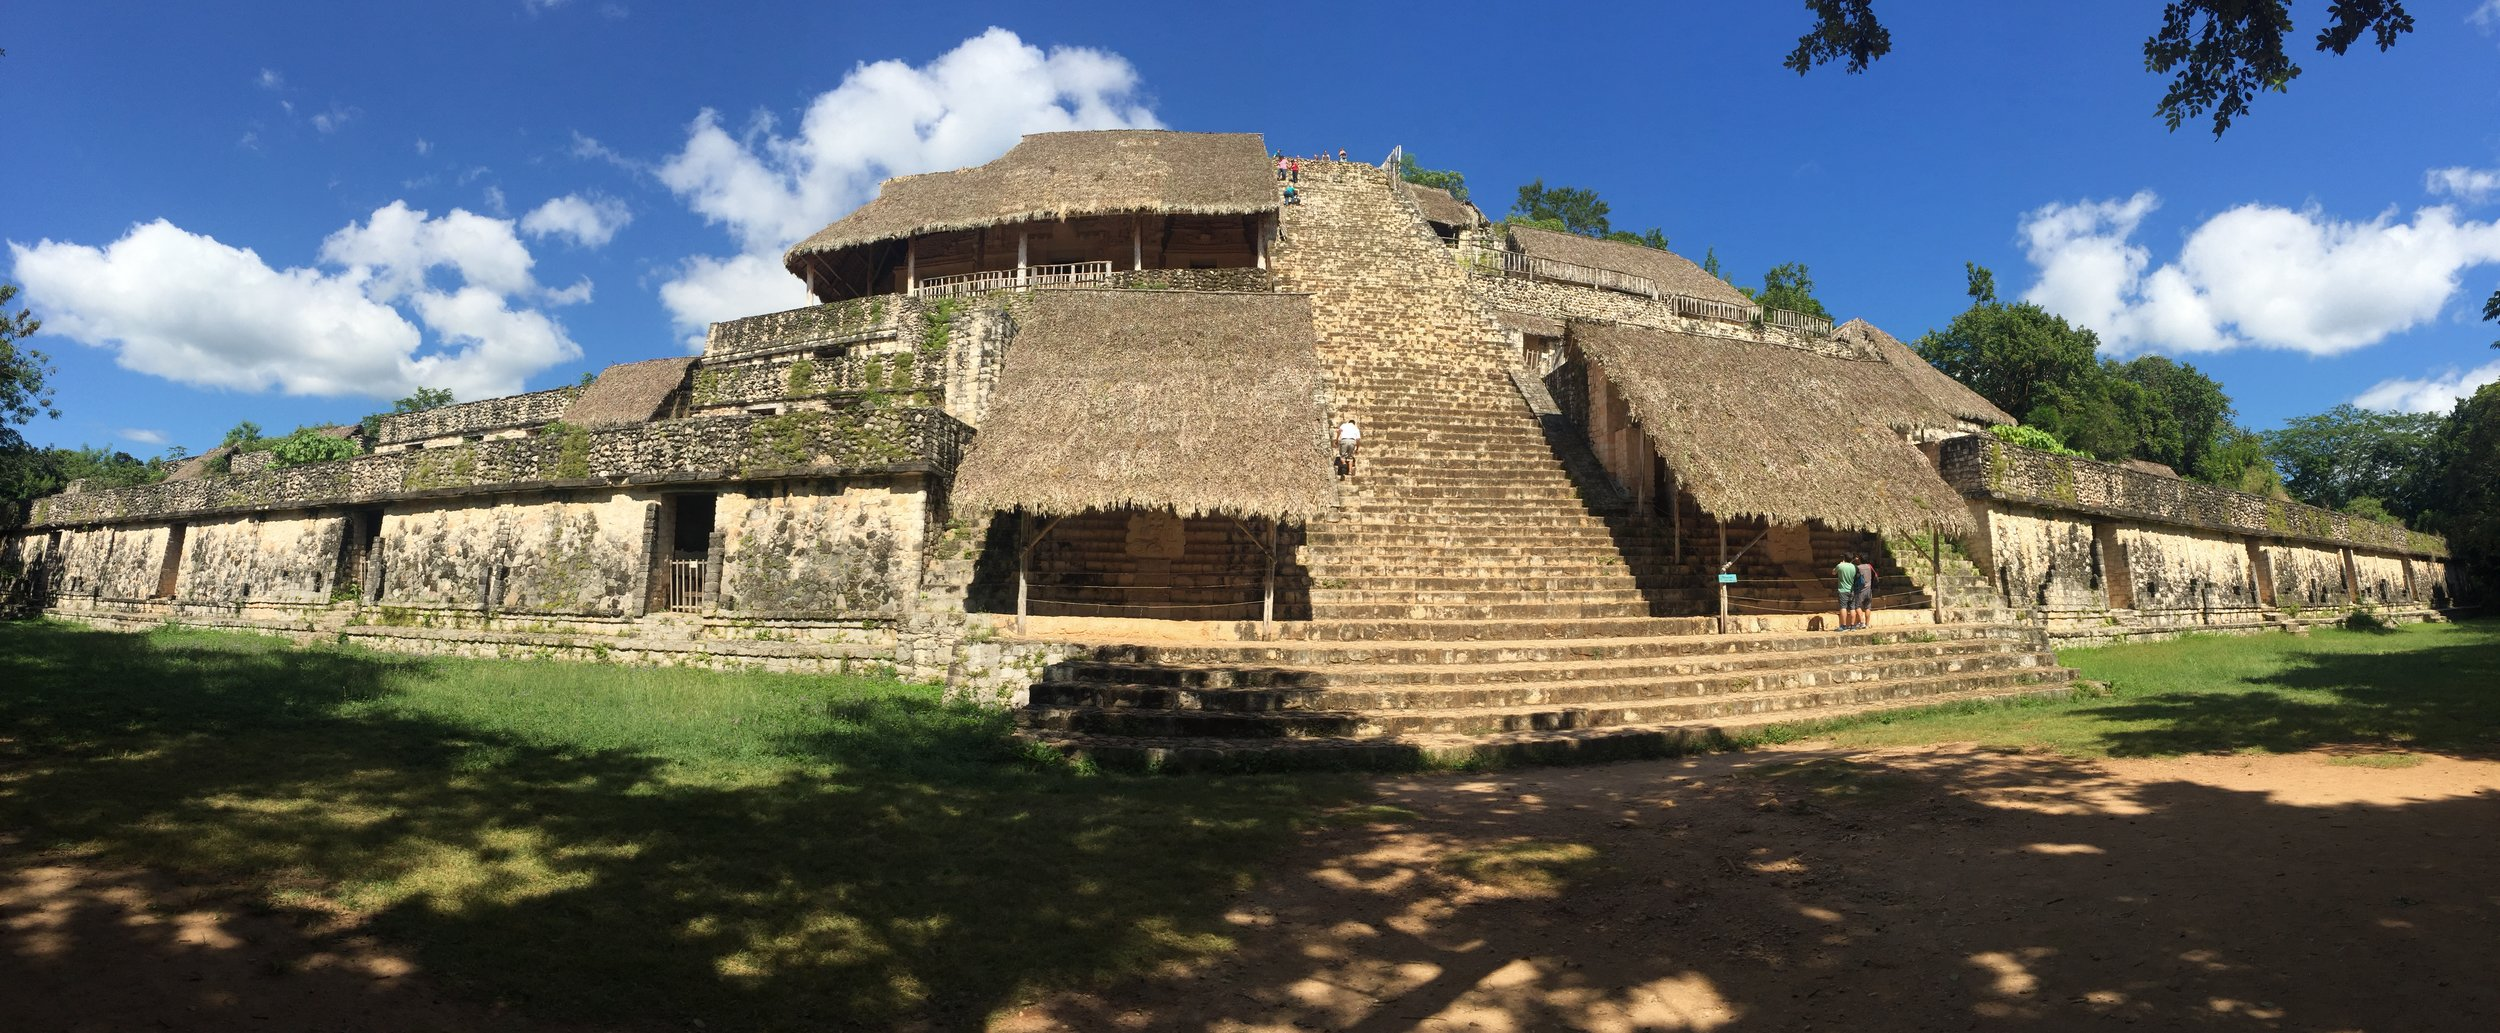 """The main pyramid of Ek'Balam. The roofed area 3/4 of the way up is where the """"teeth"""" are located"""